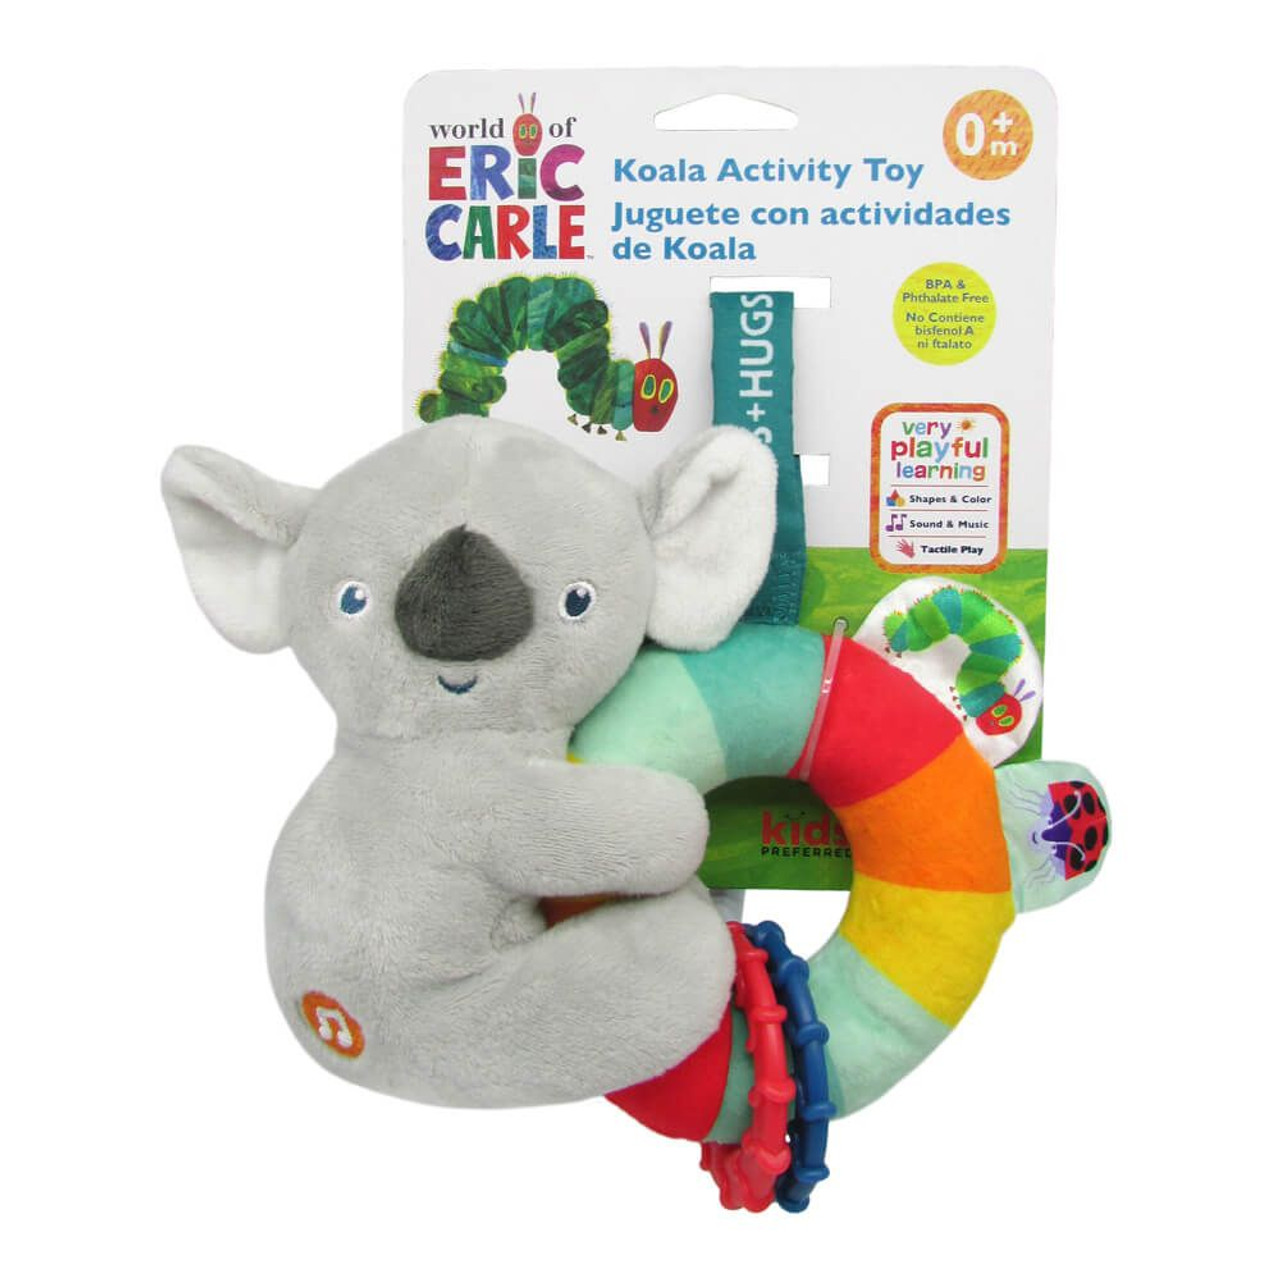 World of Eric Carle Koala Activity Toy at Baby Barn Discounts Instant recognisable very hungry caterpillar and the iconic Koala, this rattle teether soft toy is sure to entertain the young ones.